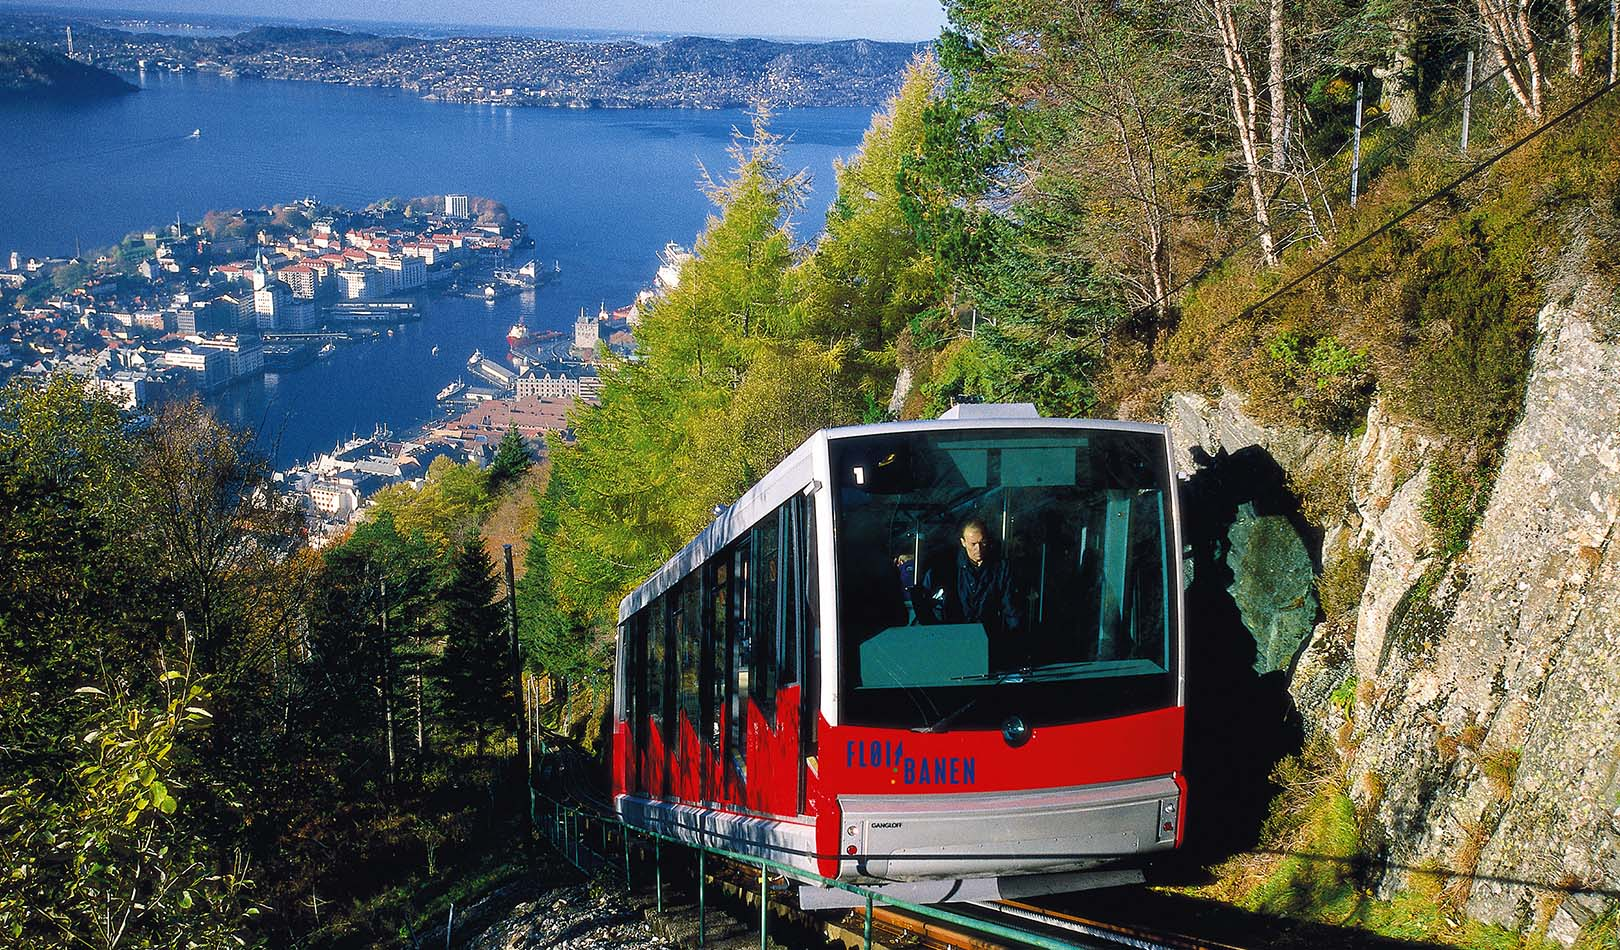 Funicular on the way up to the mountain Fløien with Bergen in the background.